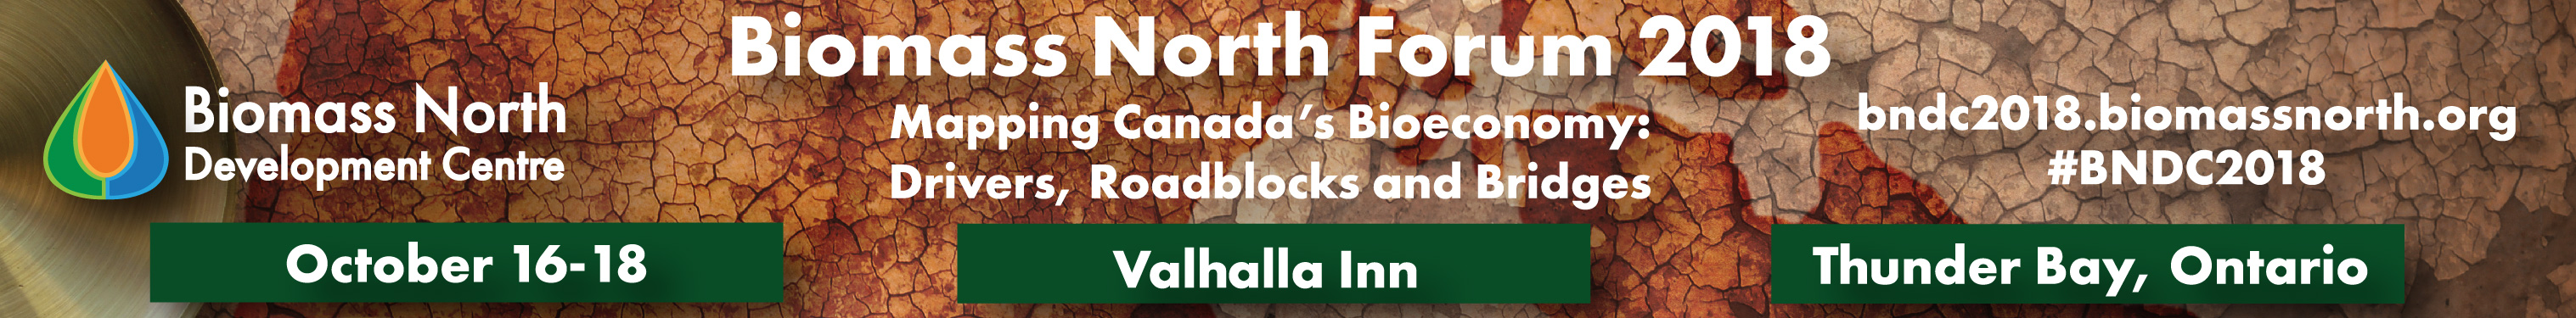 Biomass North Forum 2018